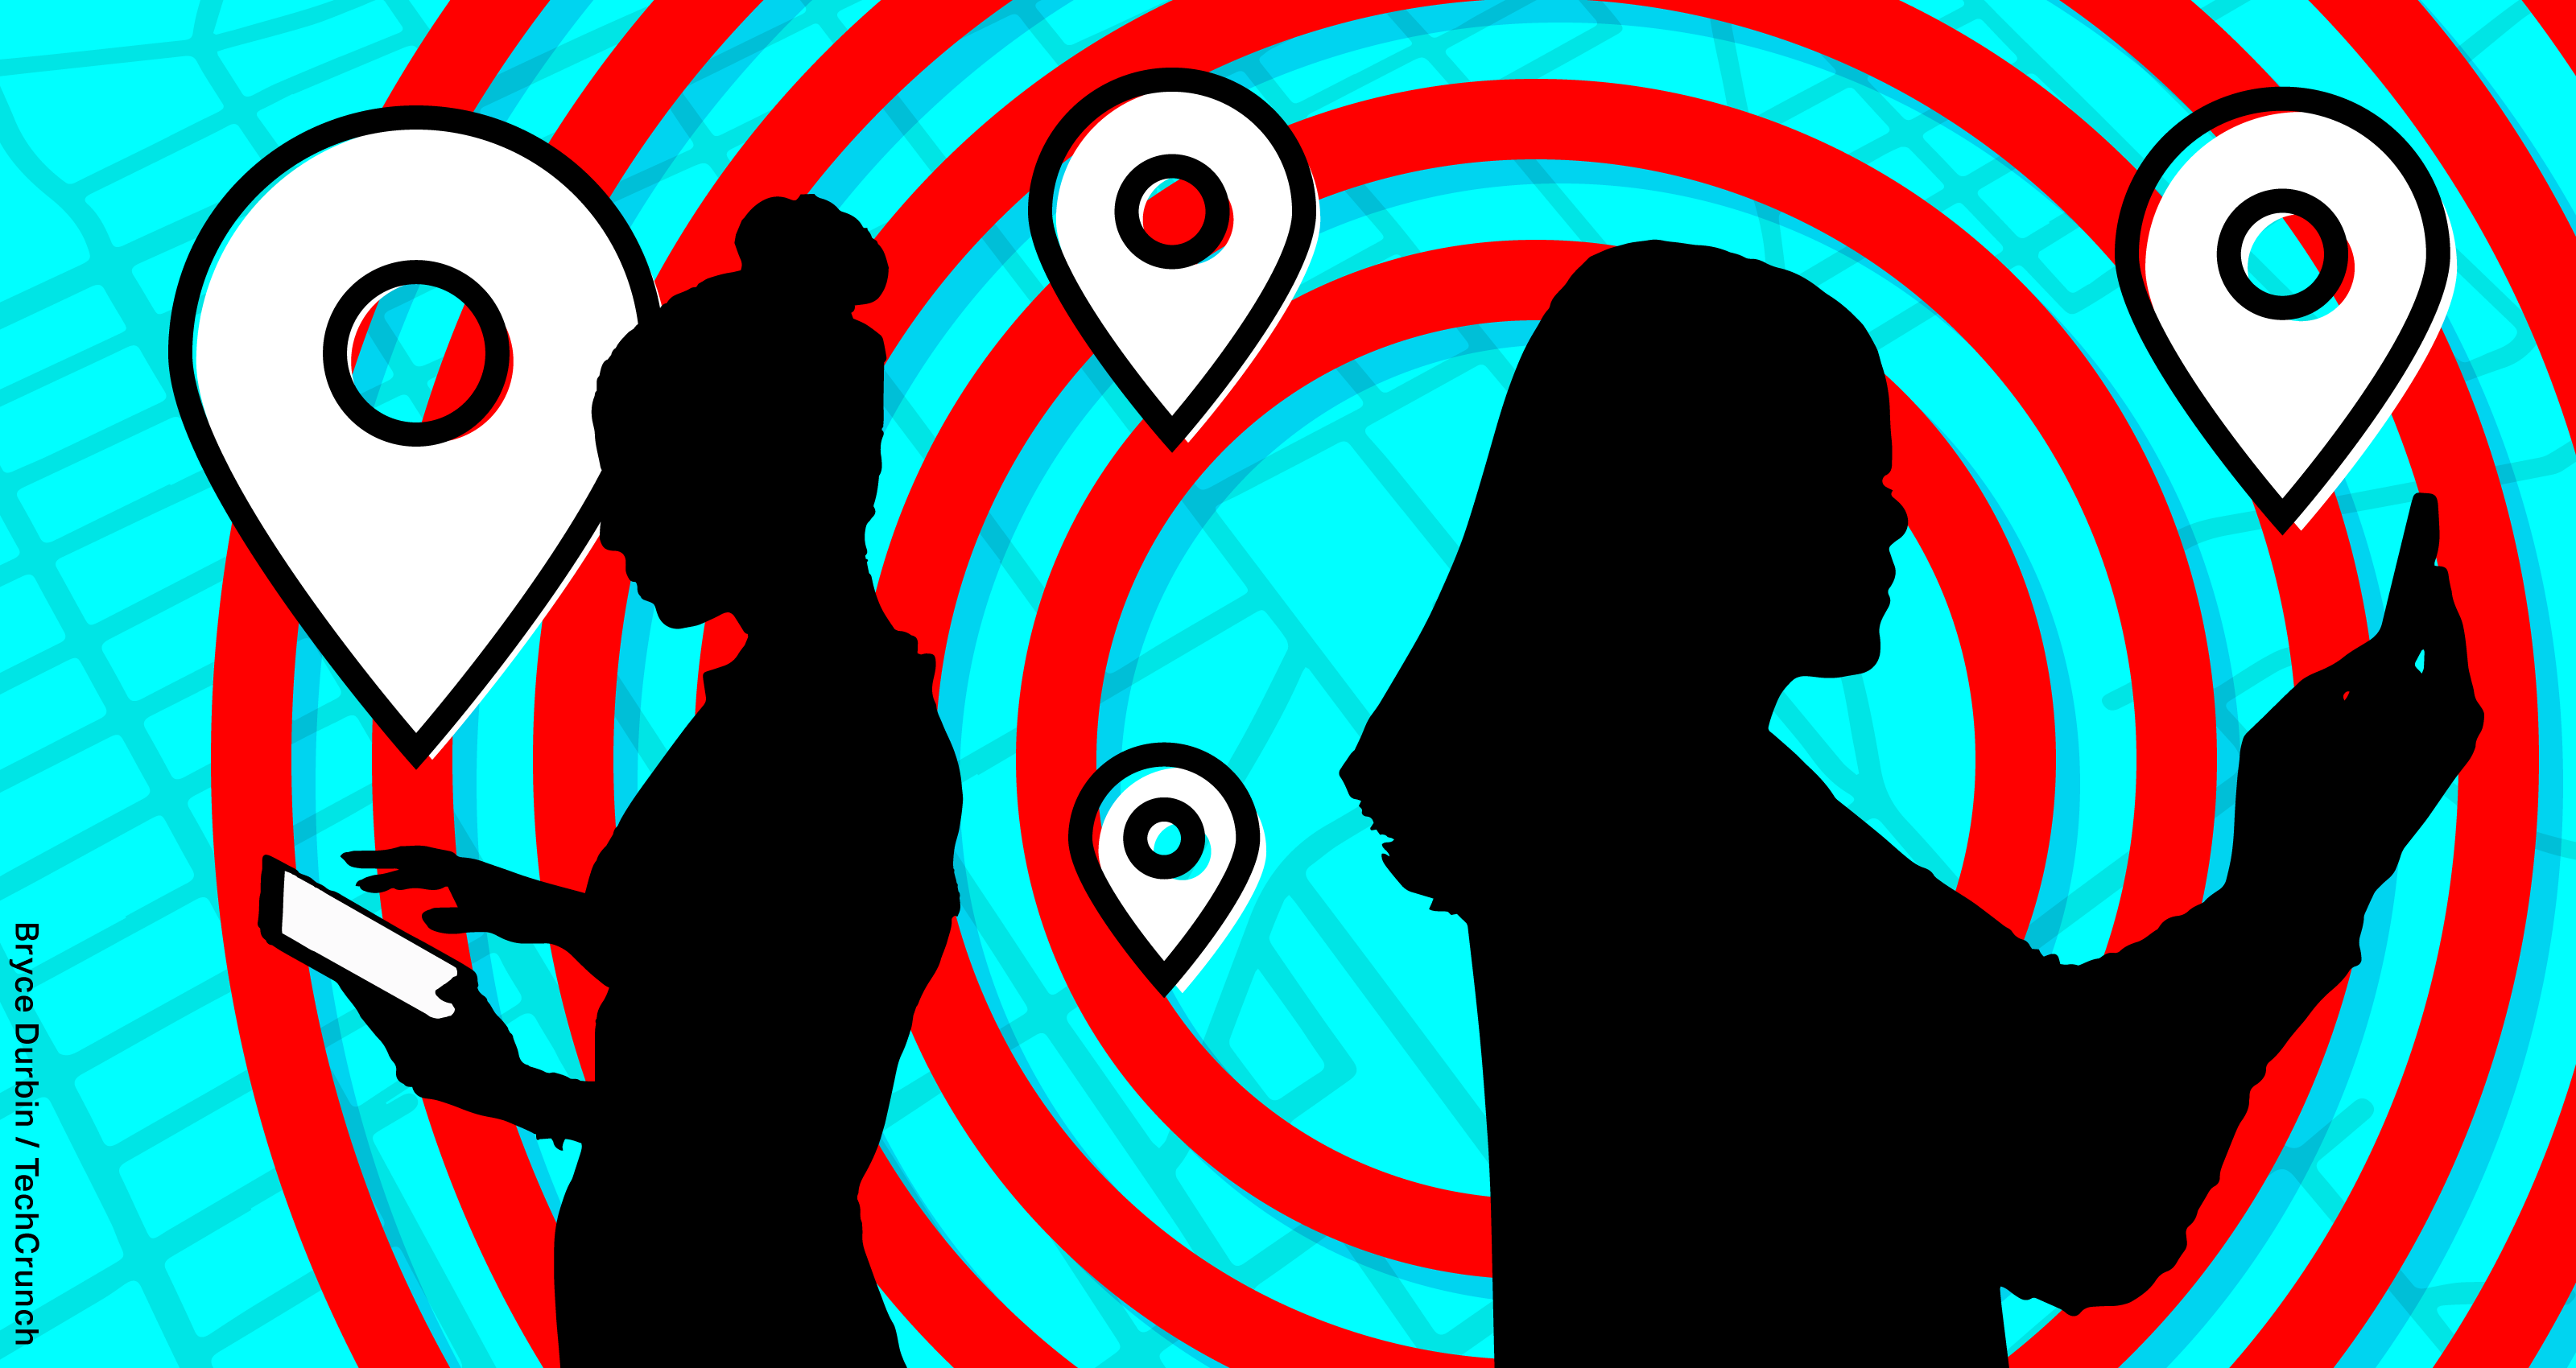 Why women are indefinitely sharing their locations | TechCrunch